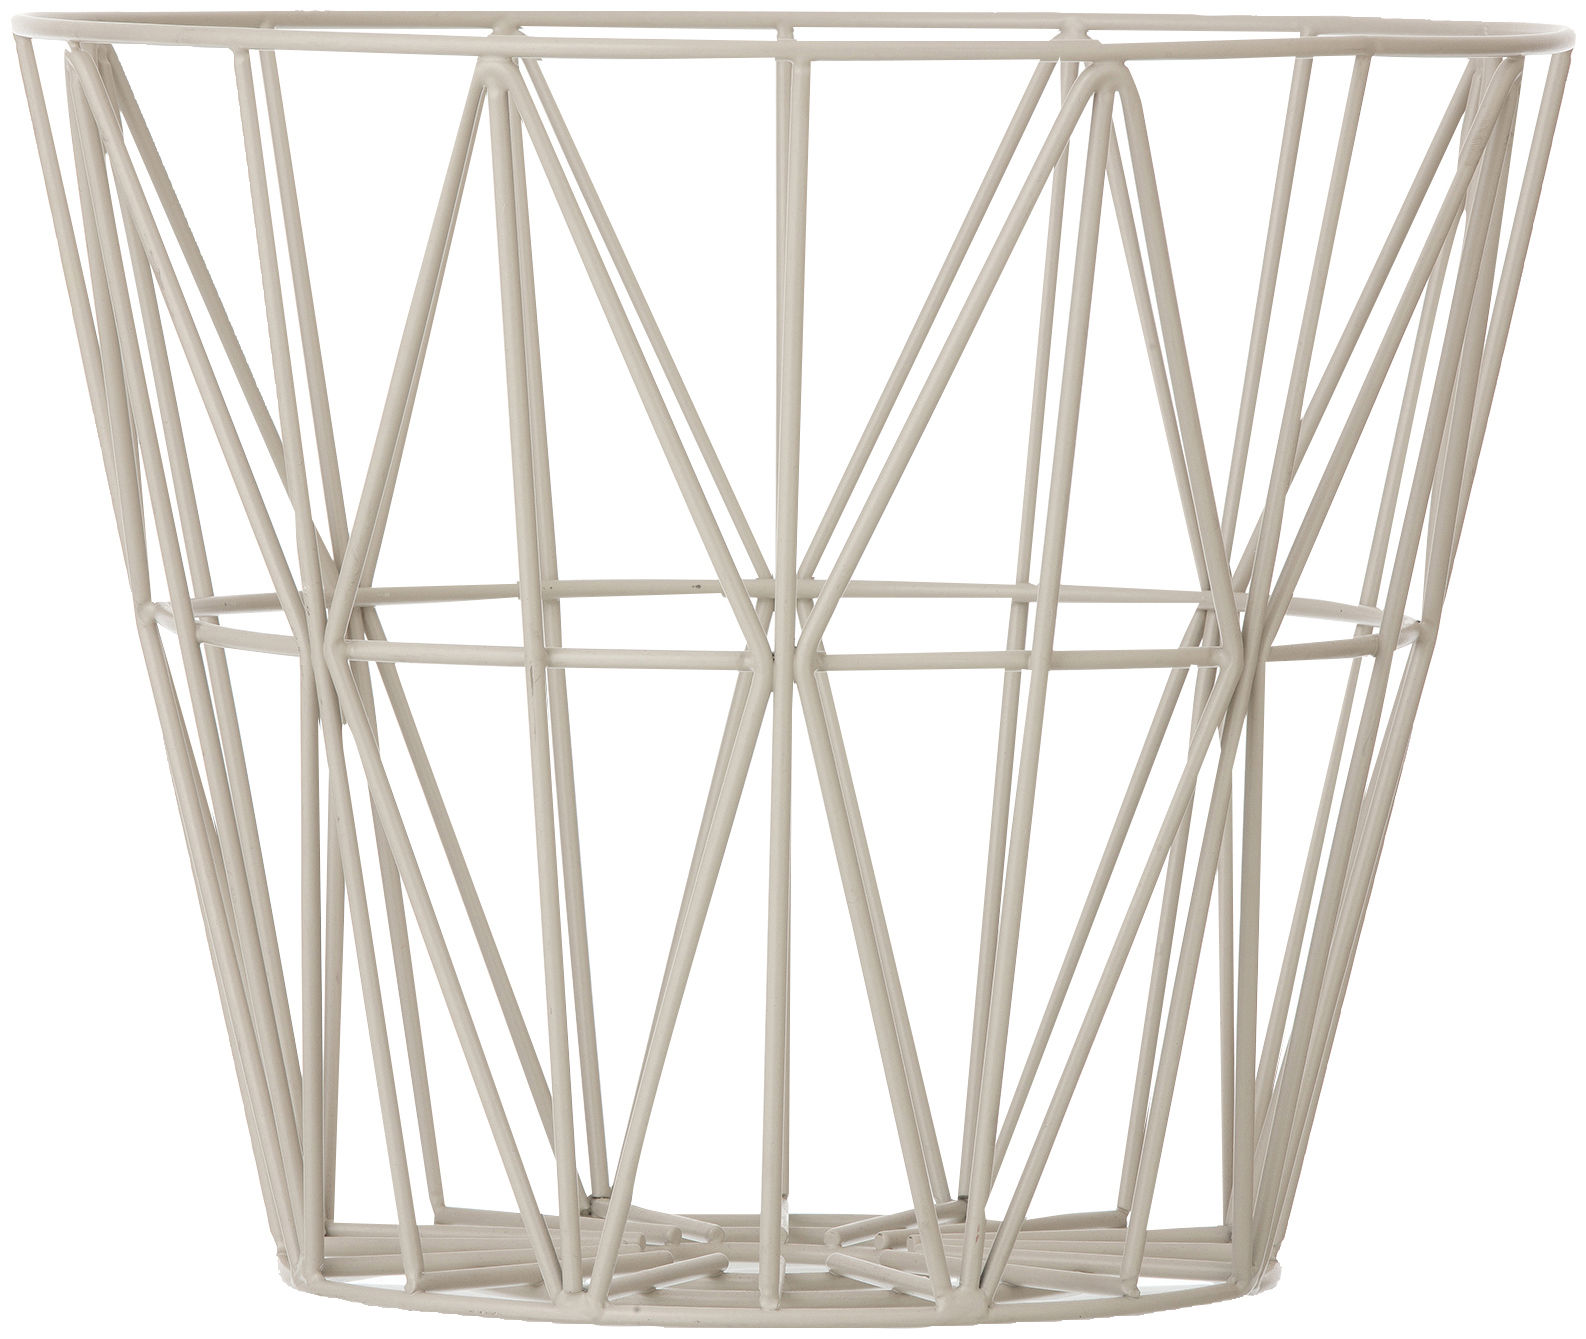 Decoration - Centrepieces & Centrepiece Bowls - Wire Large Basket by Ferm Living - Grey - Lacquered metal